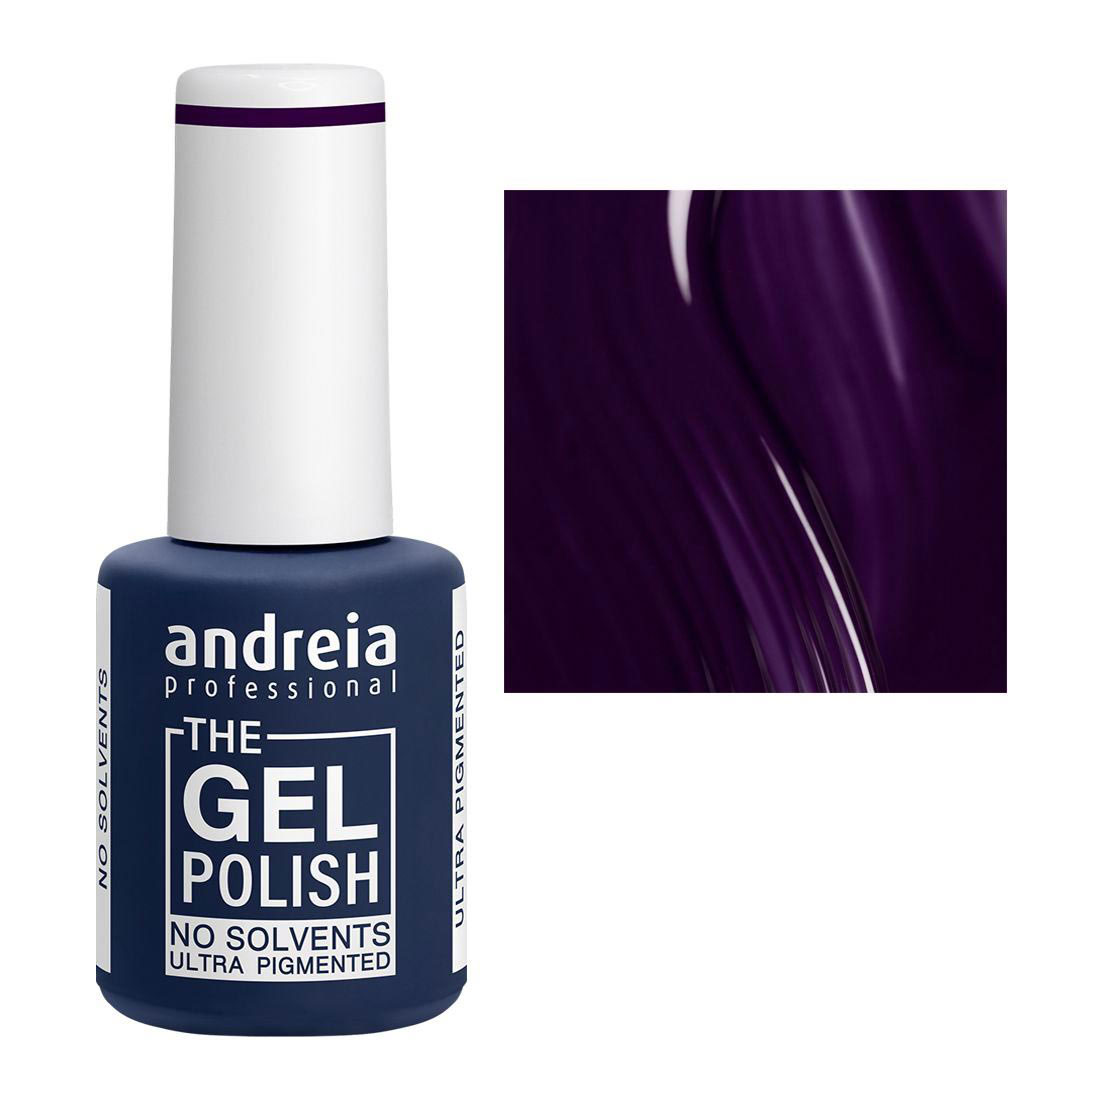 Andreia The Gel Polish G27